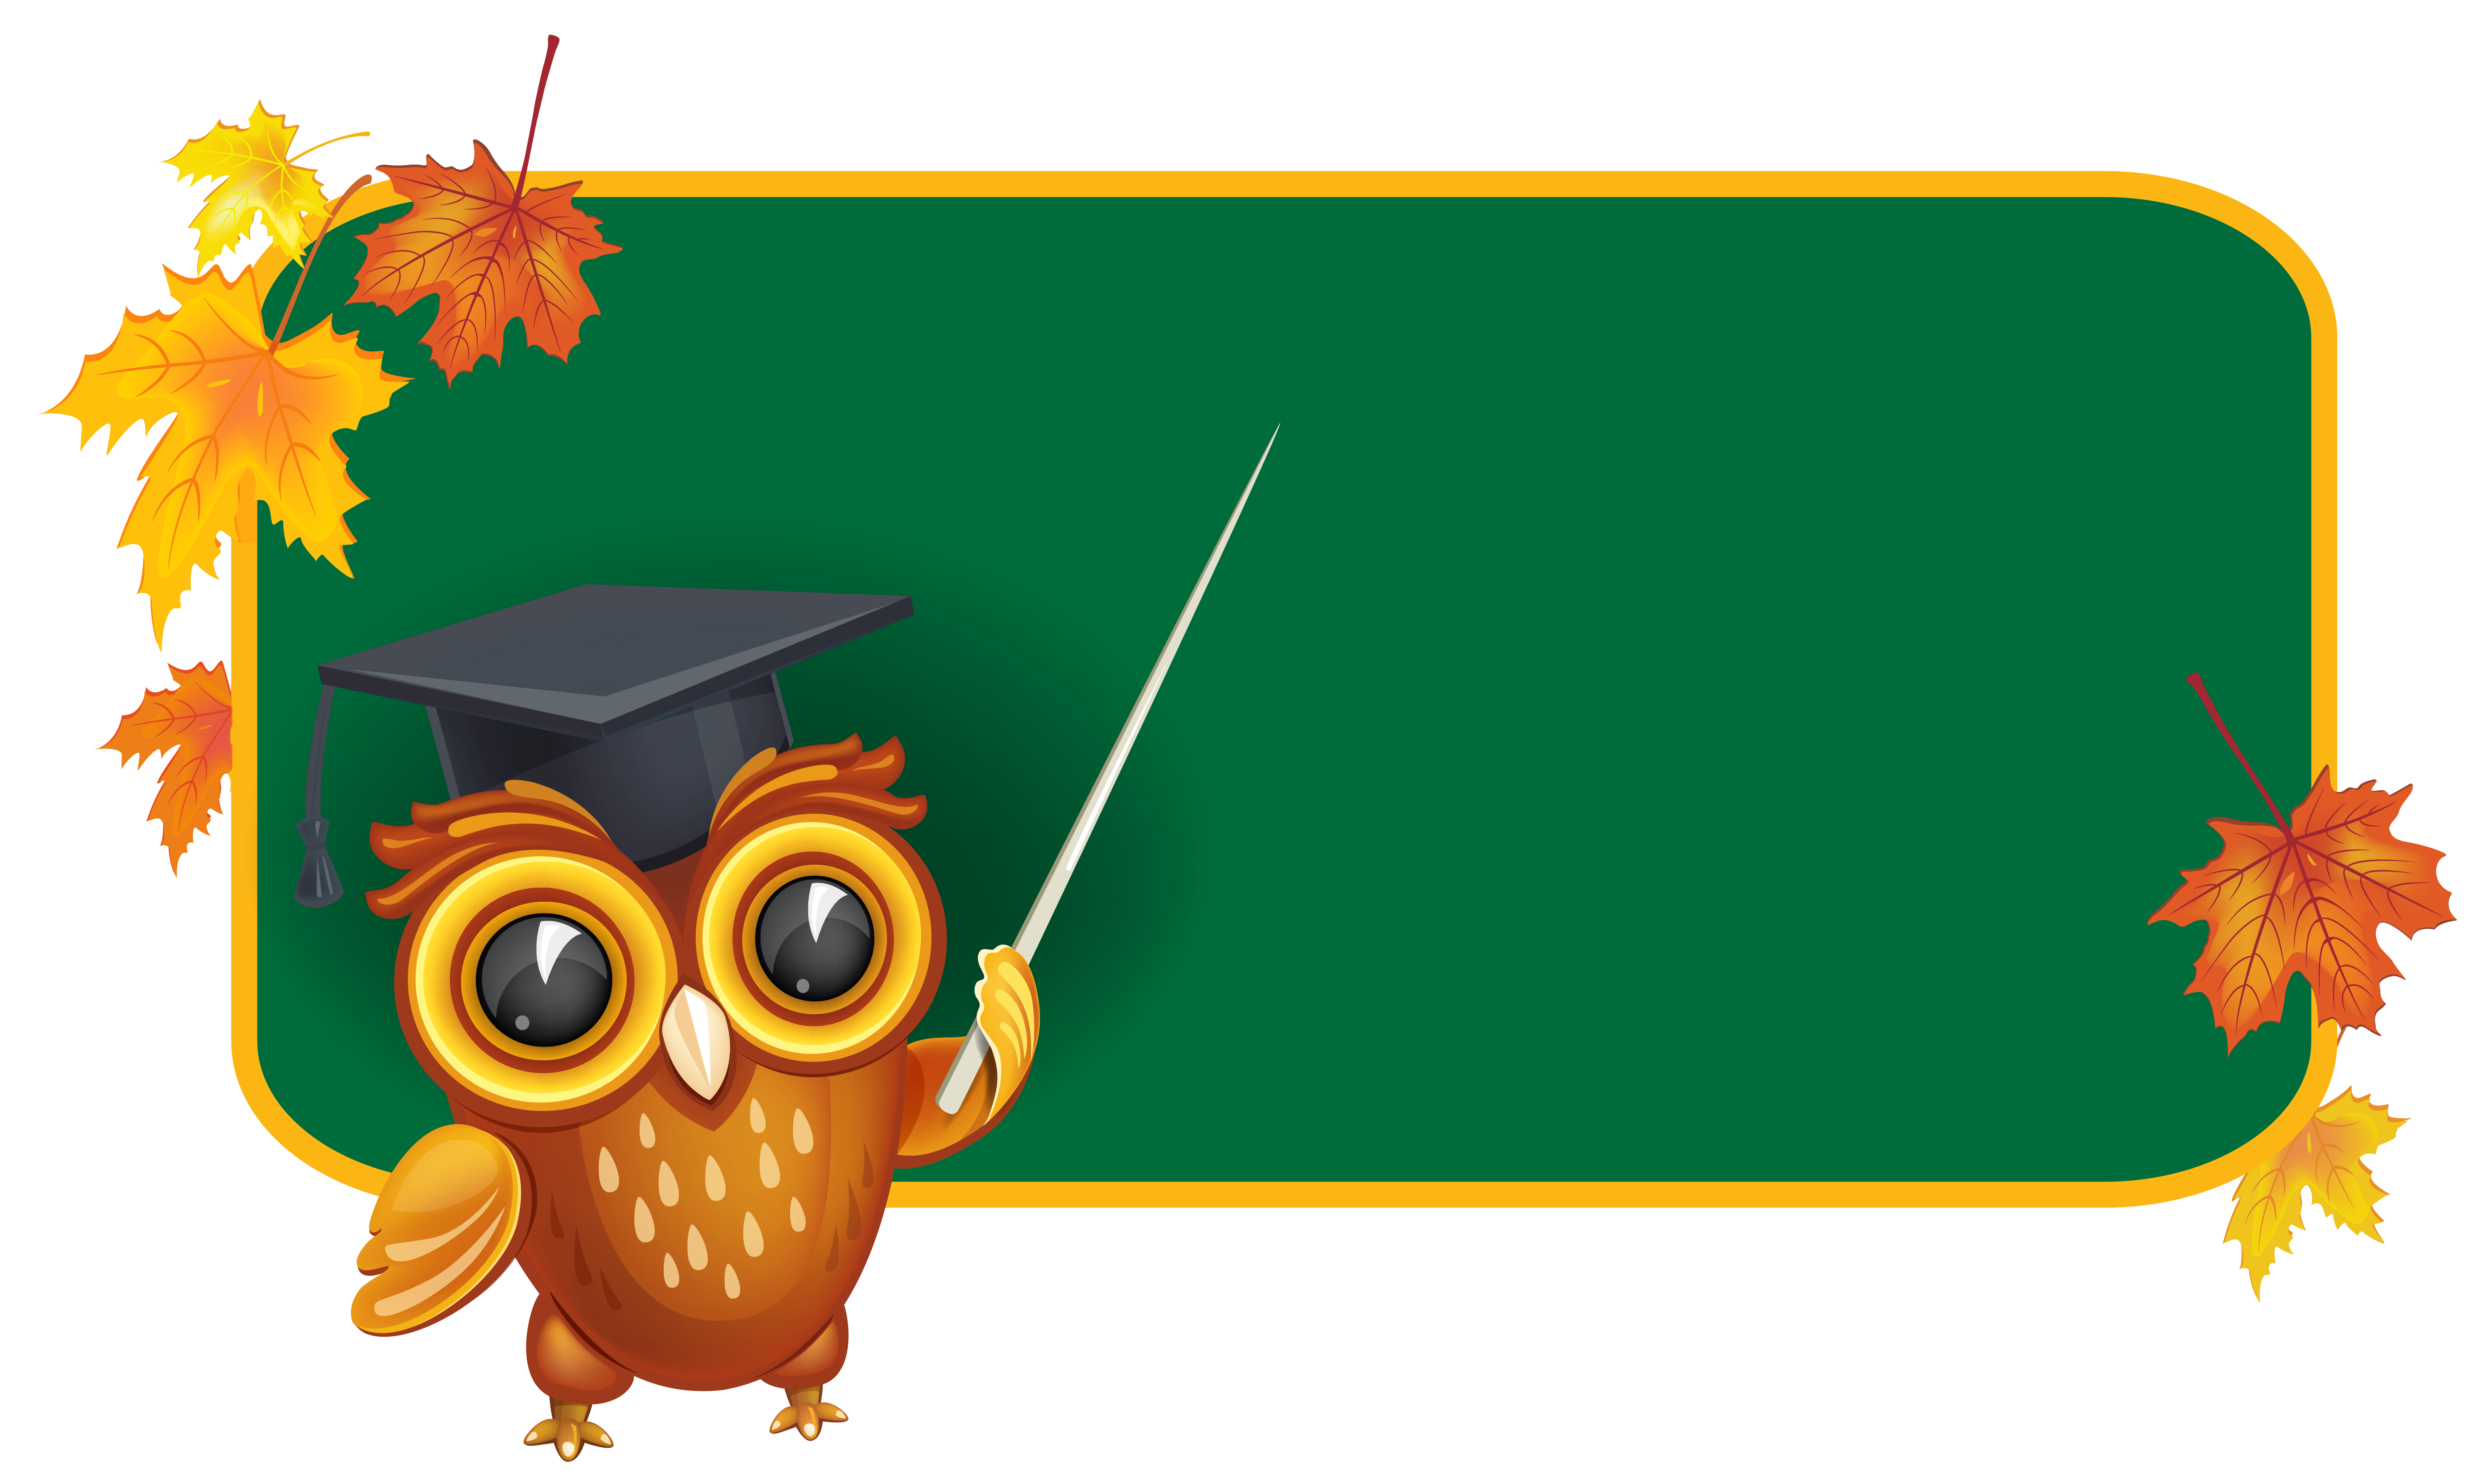 png library stock Board clipart transparent. Owl with school png.